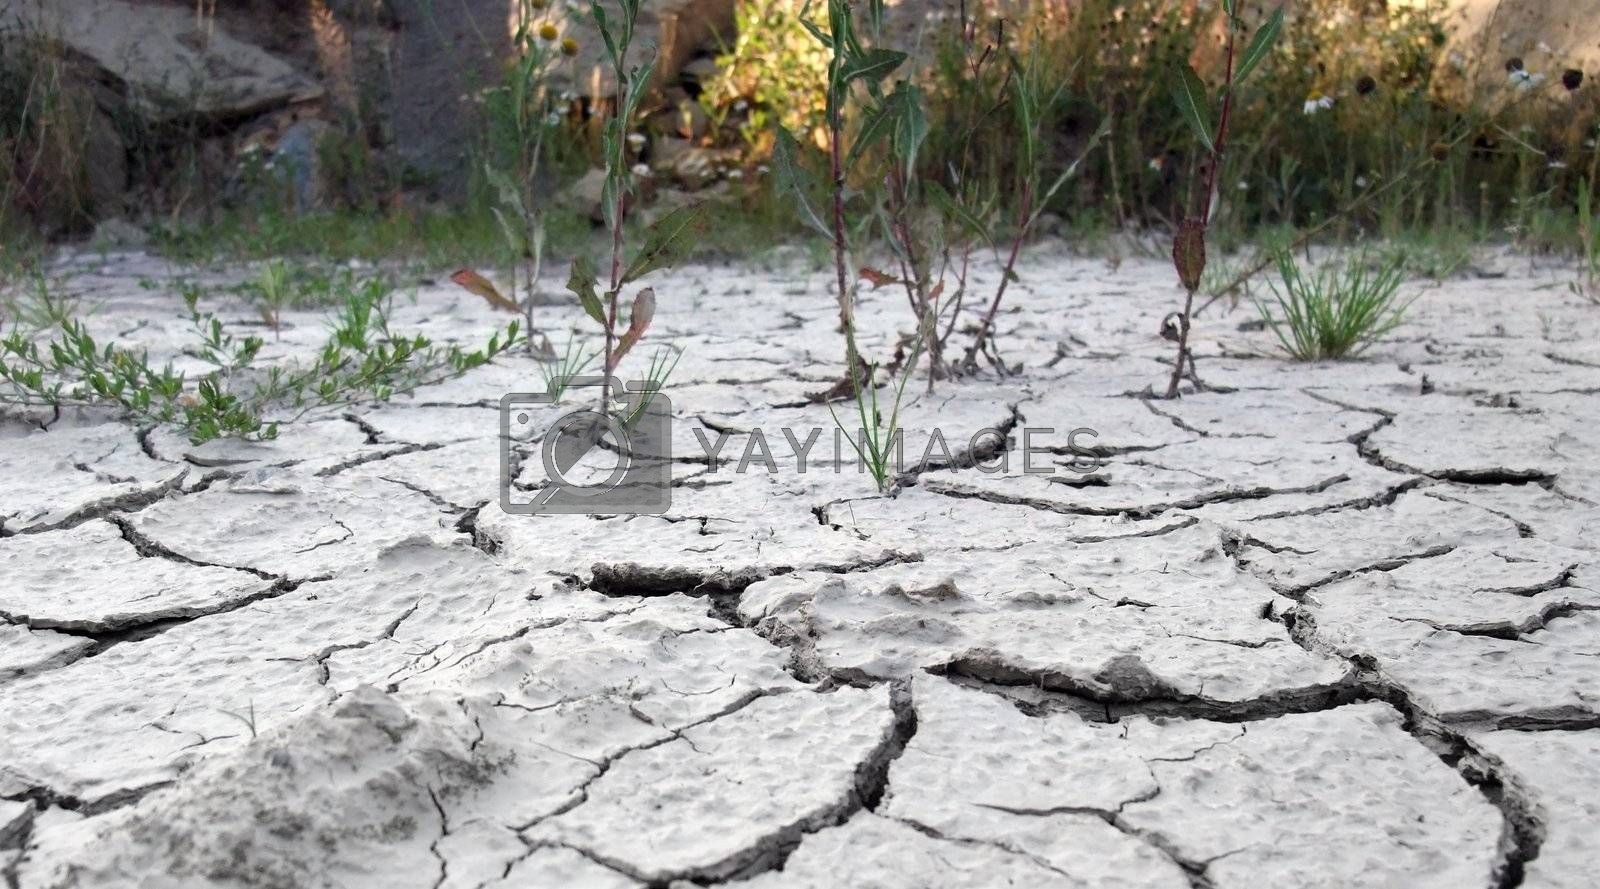 low angle photographie showing the border of a dry cracked soil area with distant plants